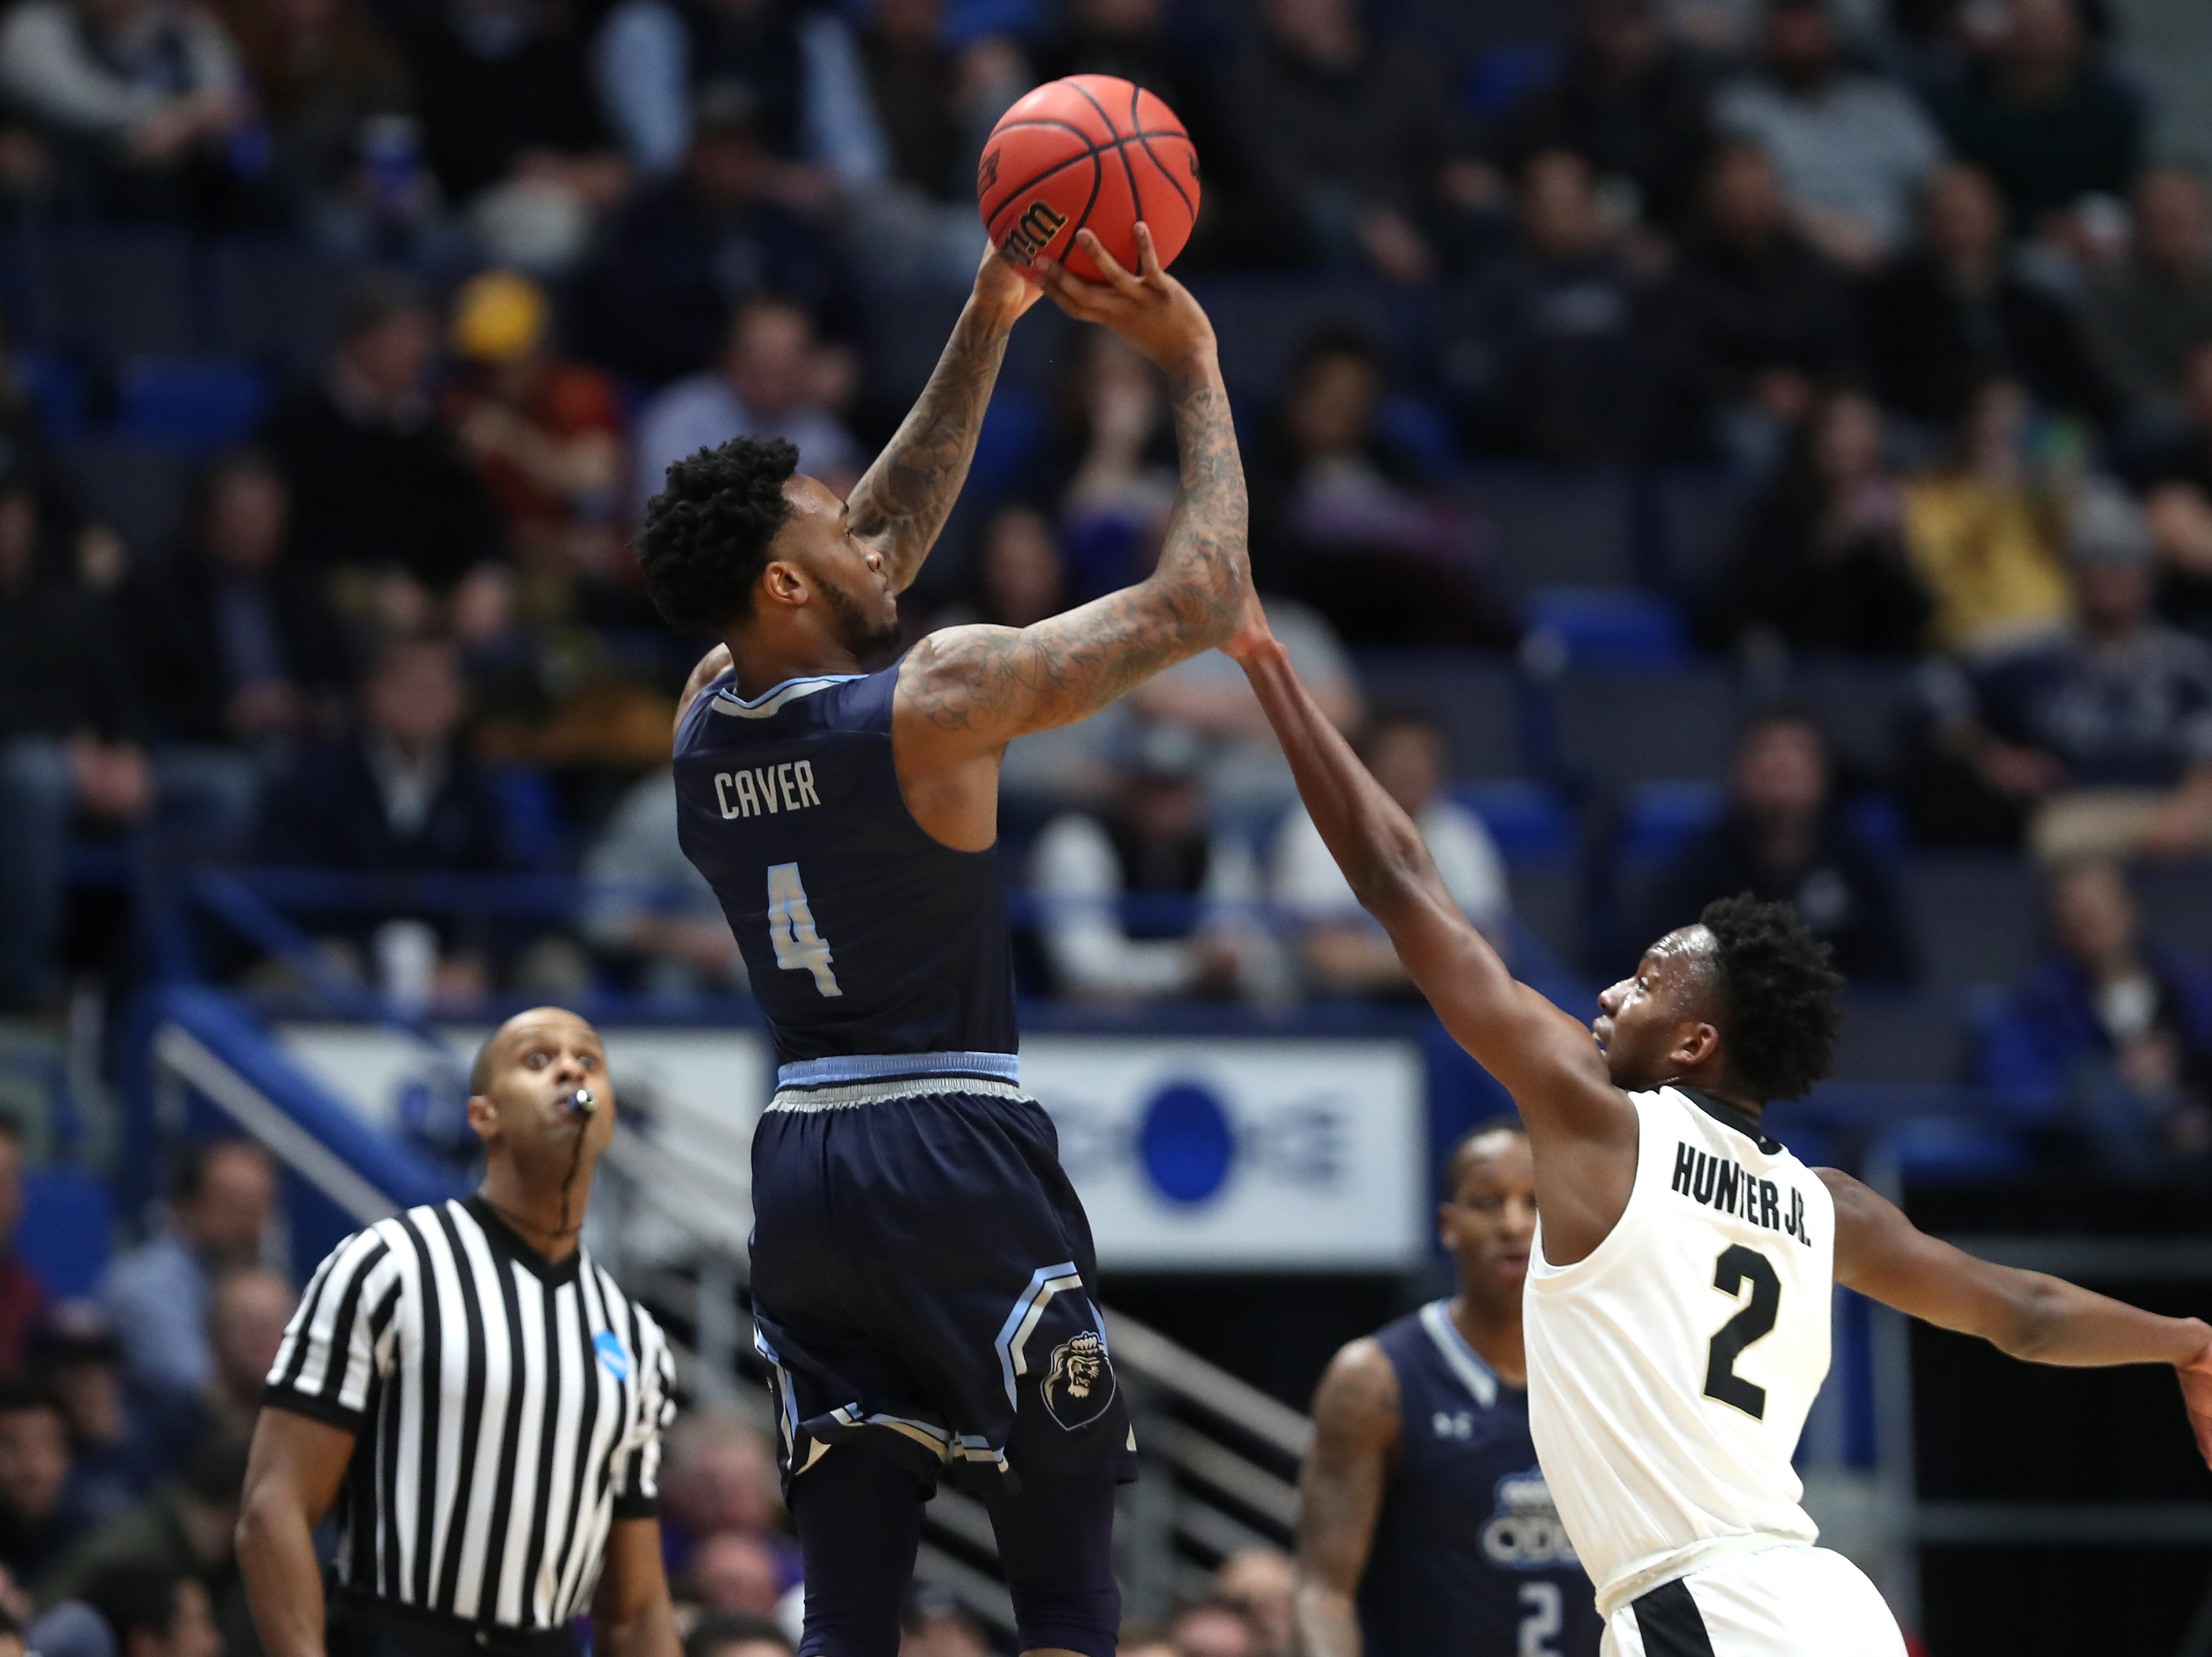 Ahmad Caver #4 of the Old Dominion Monarchs shoots against Eric Hunter Jr. #2 of the Purdue Boilermakers in the first half during the 2019 NCAA Men's Basketball Tournament at XL Center on March 21, 2019 in Hartford, Connecticut.